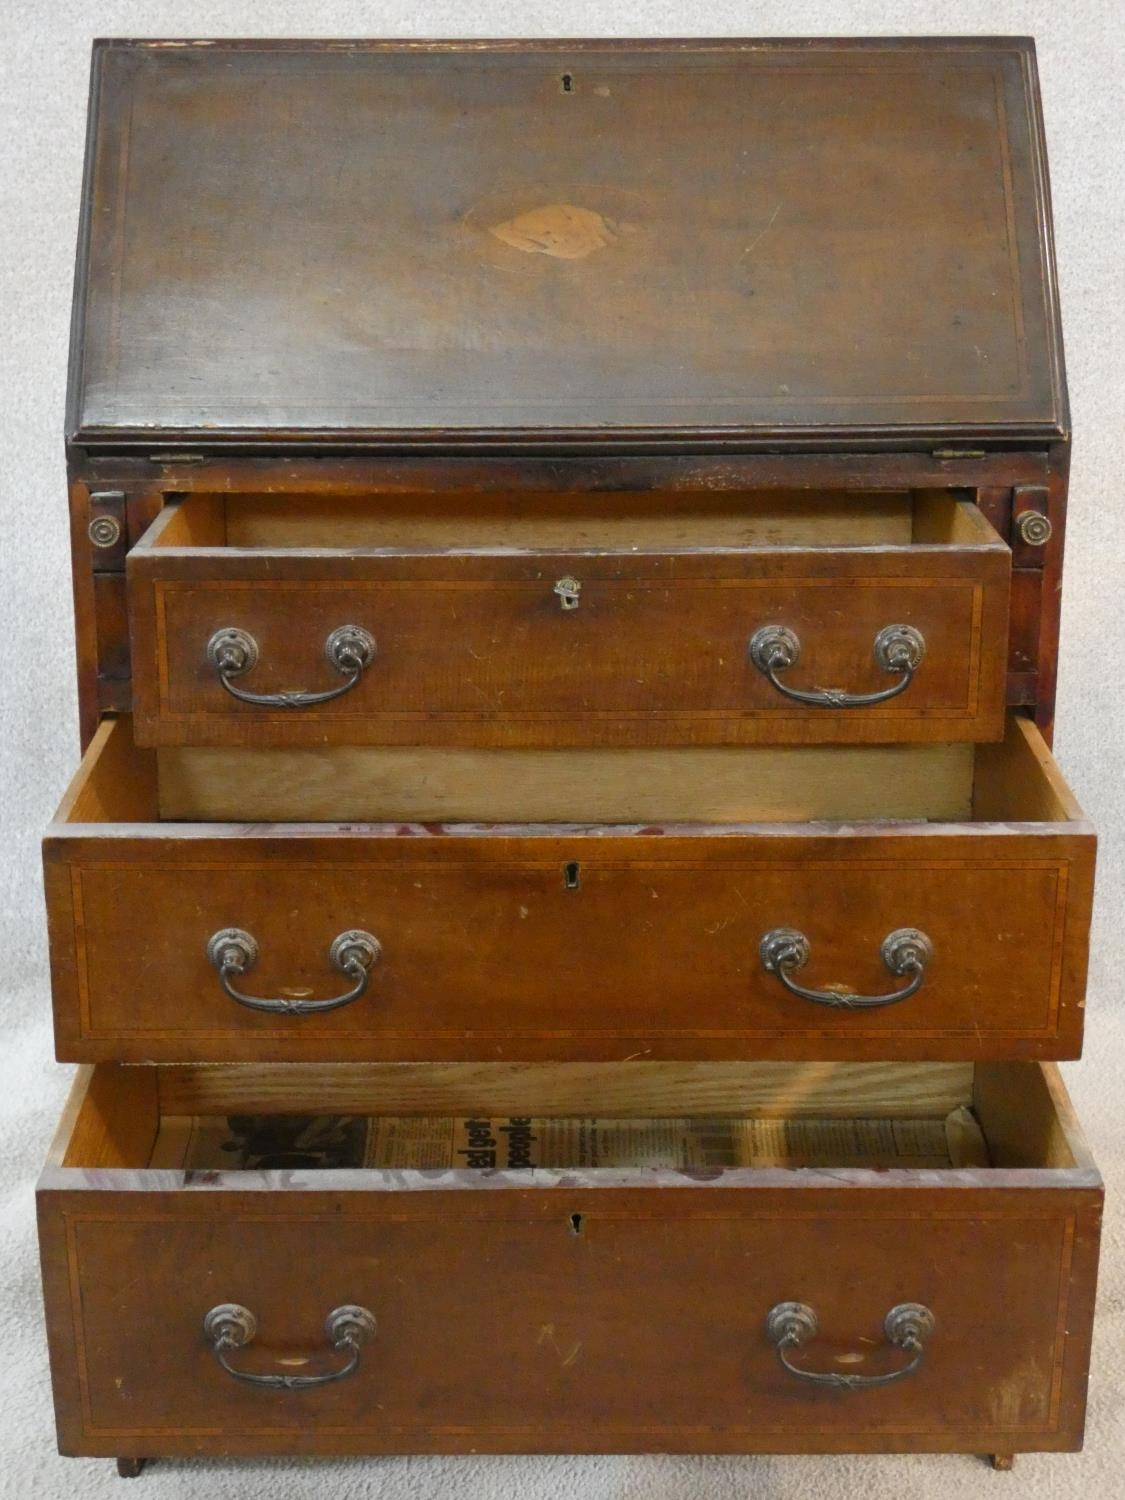 An Edwardian mahogany bureau with satinwood stringing and shell inlay to the frieze. H.95 W.61 D. - Image 3 of 6